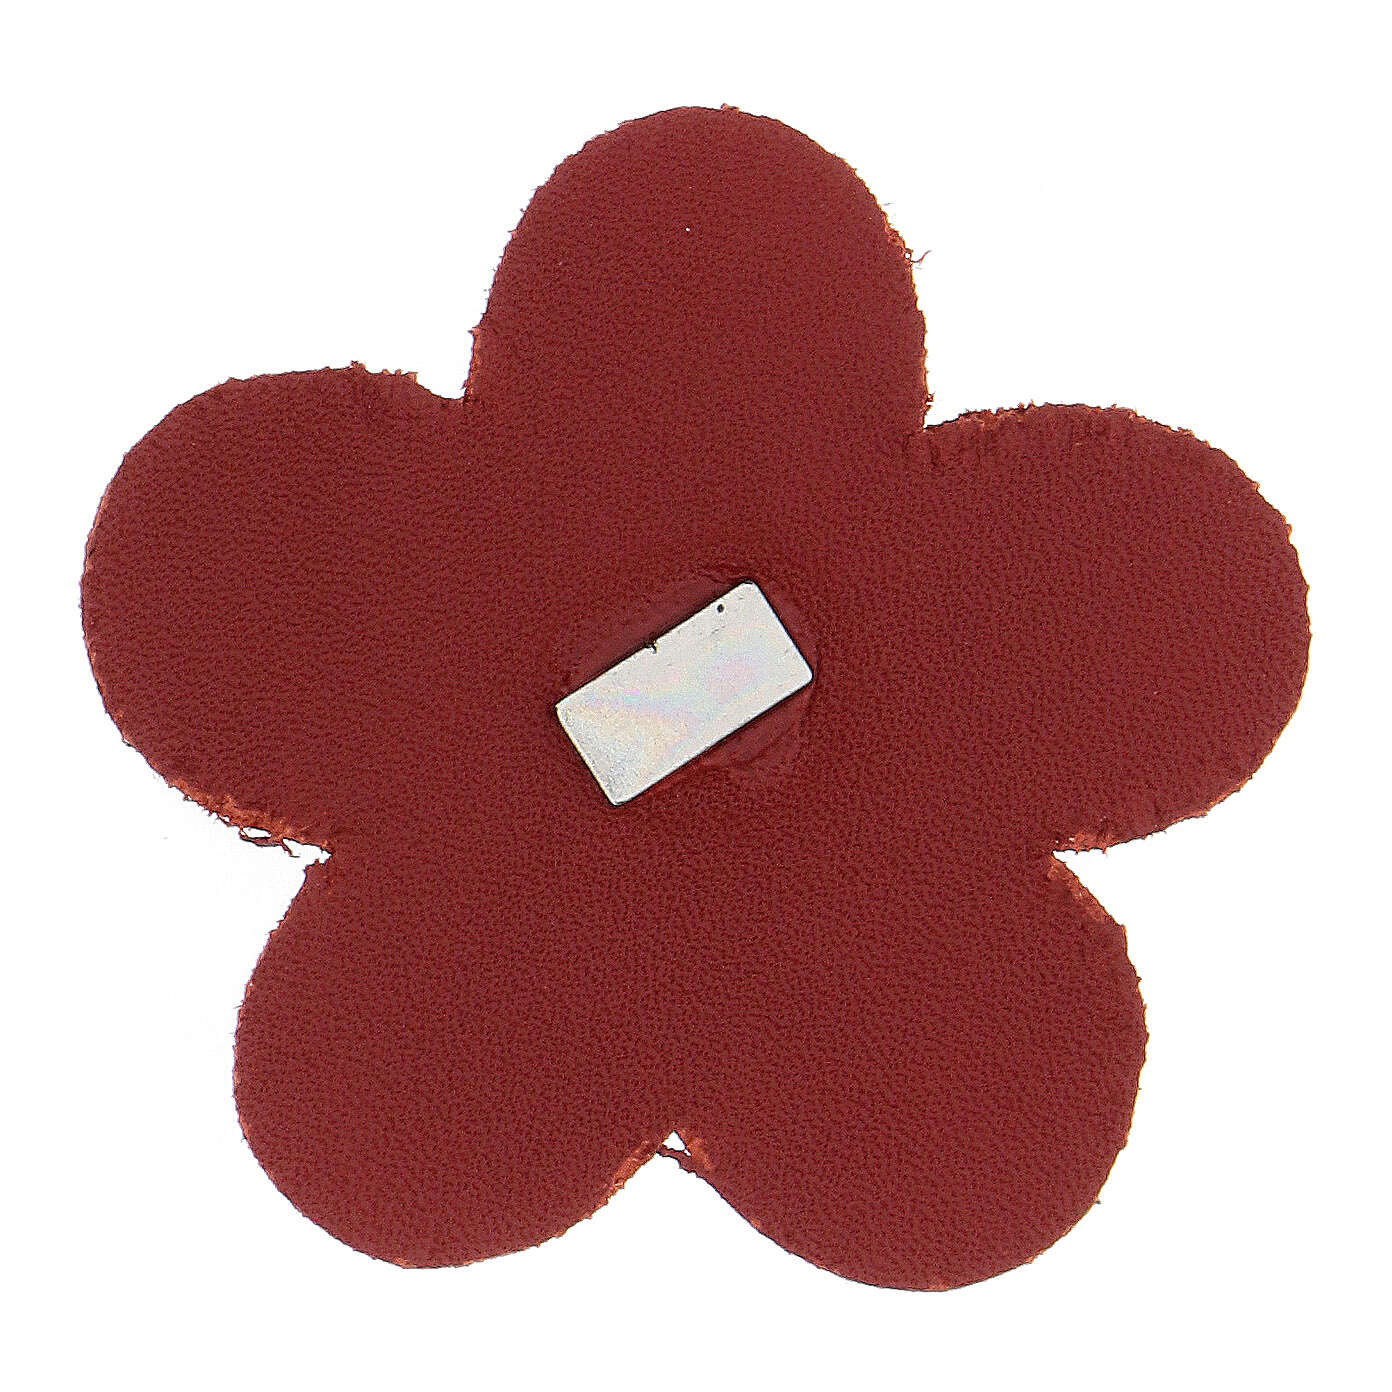 Our Lady of Lourdes flower magnet real red leather 2 in 3